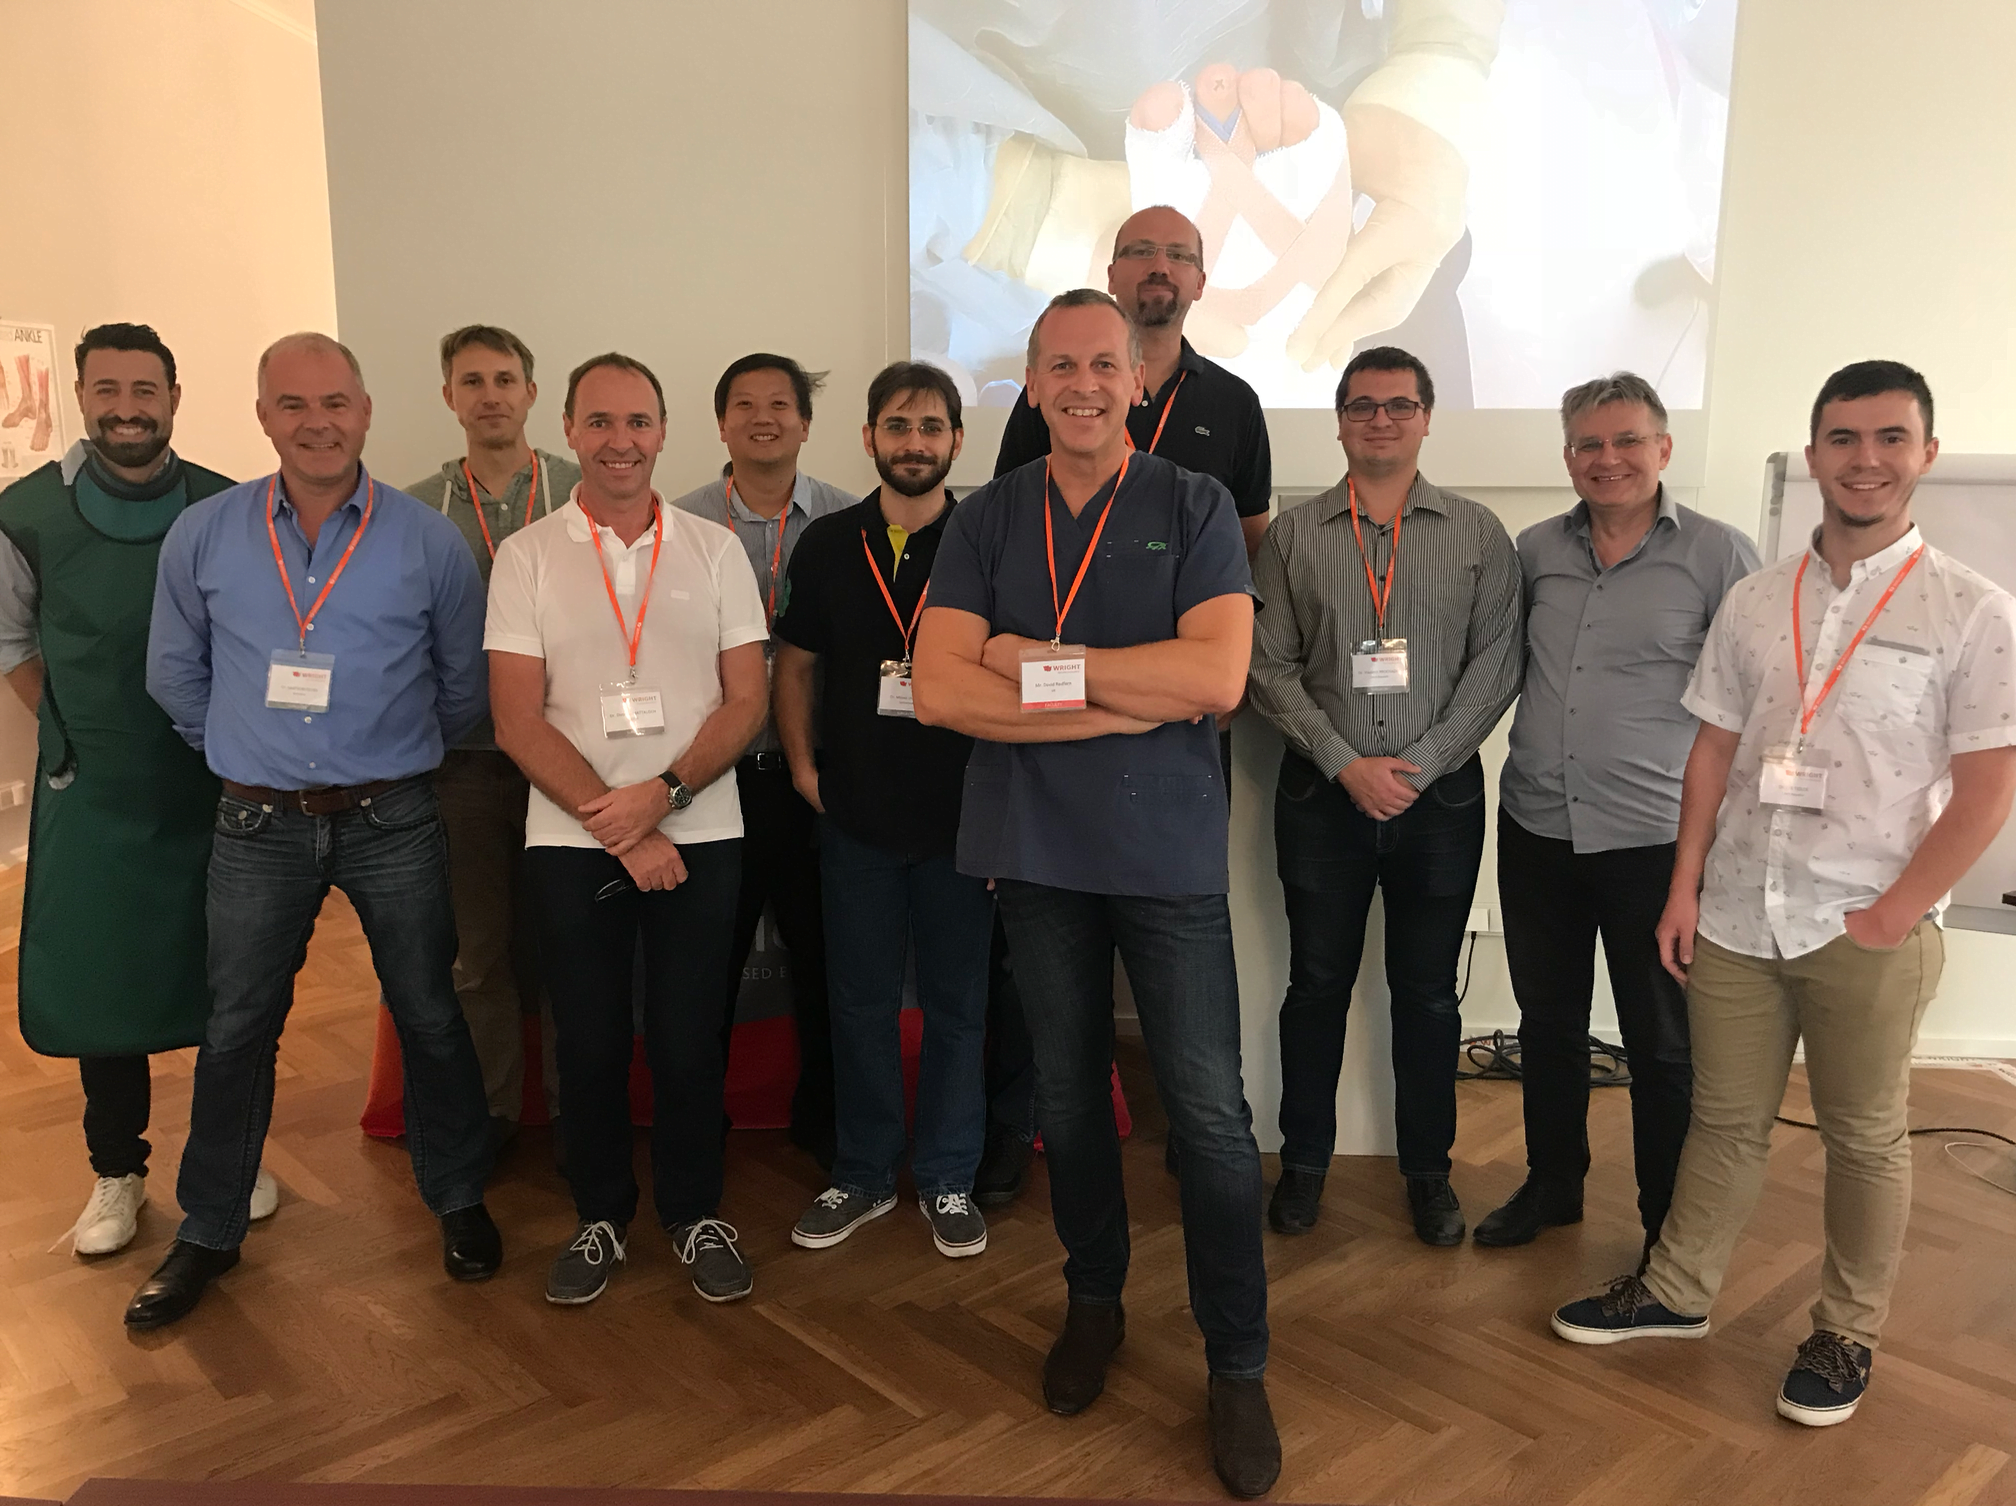 Minimally Invasive Bunion Surgery Training in Germany